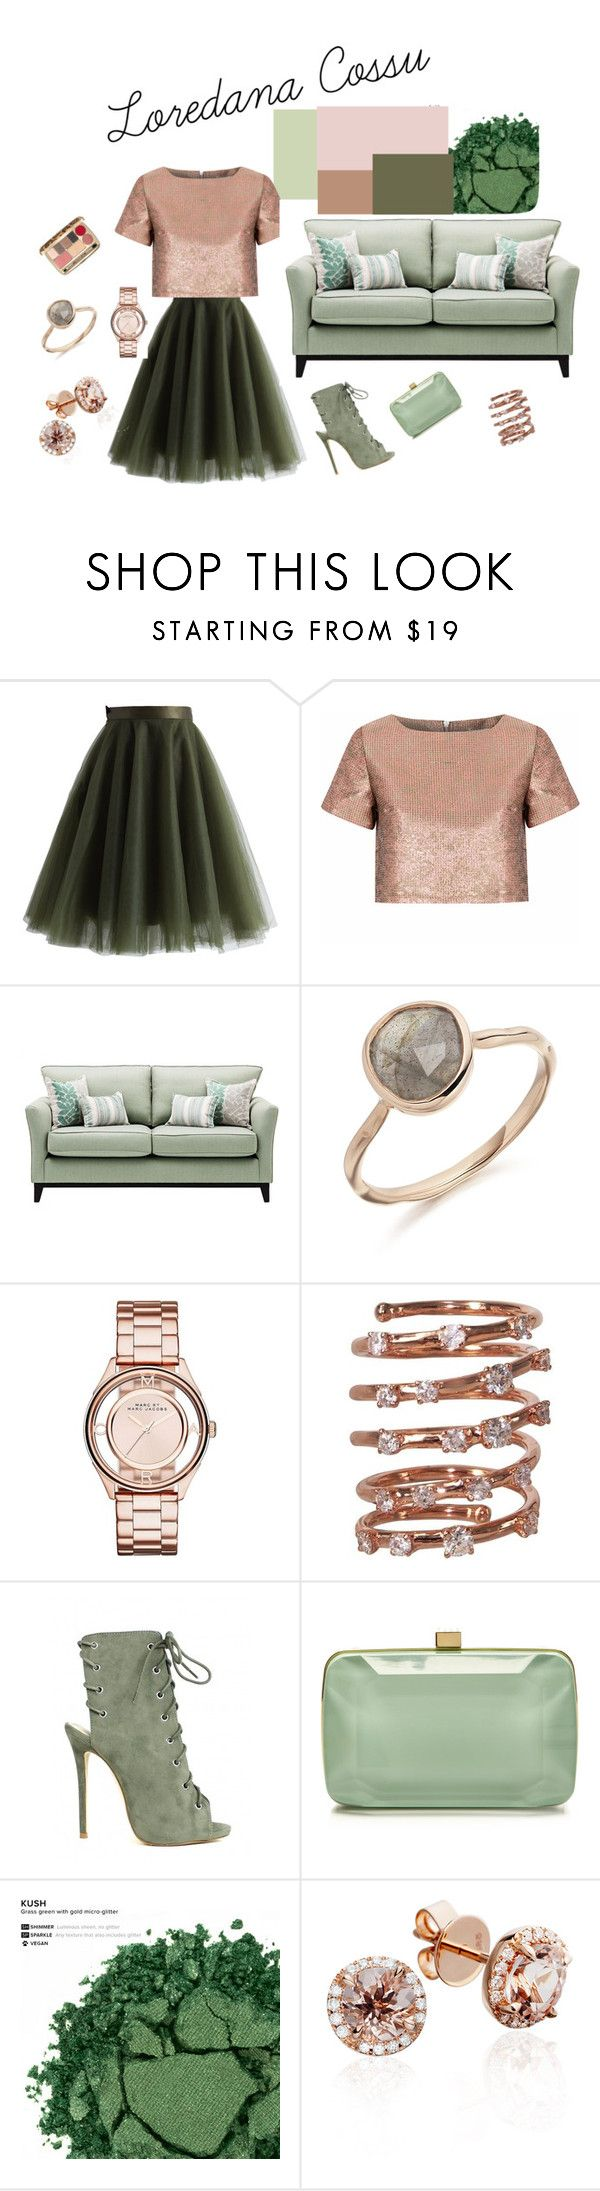 MOODBOARD by loredanacossu on Polyvore featuring moda, Glamorous, Chicwish, Elie Saab, Marc by Marc Jacobs, Plukka, Urban Decay, Dolce&Gabbana and Chanel